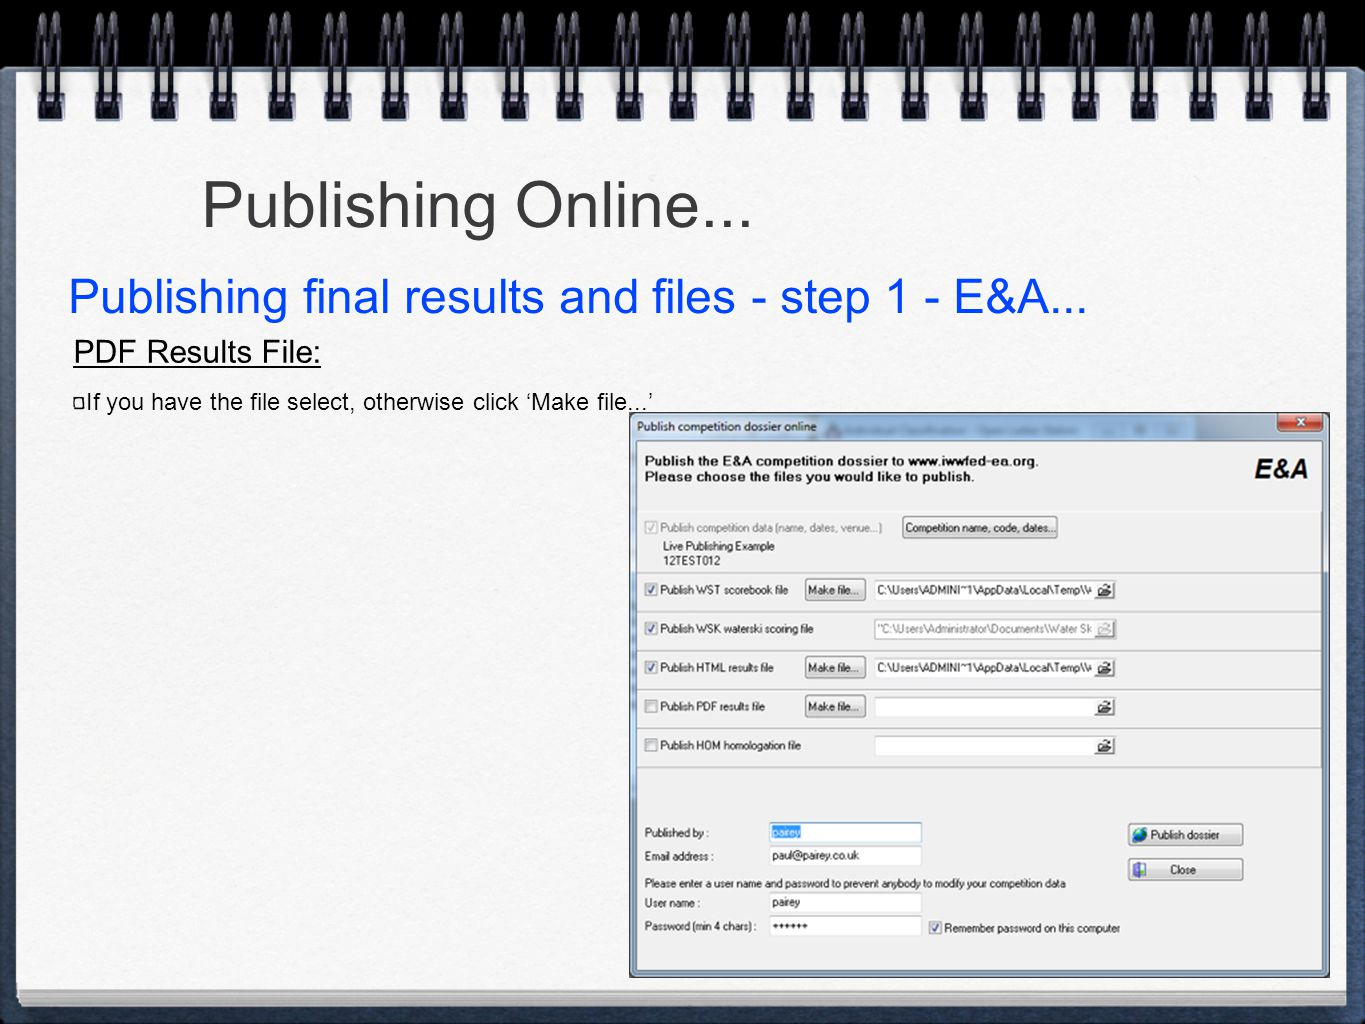 Publishing Online... PDF Results File: If you have the file select, otherwise click 'Make file...' Publishing final results and files - step 1 - E&A..